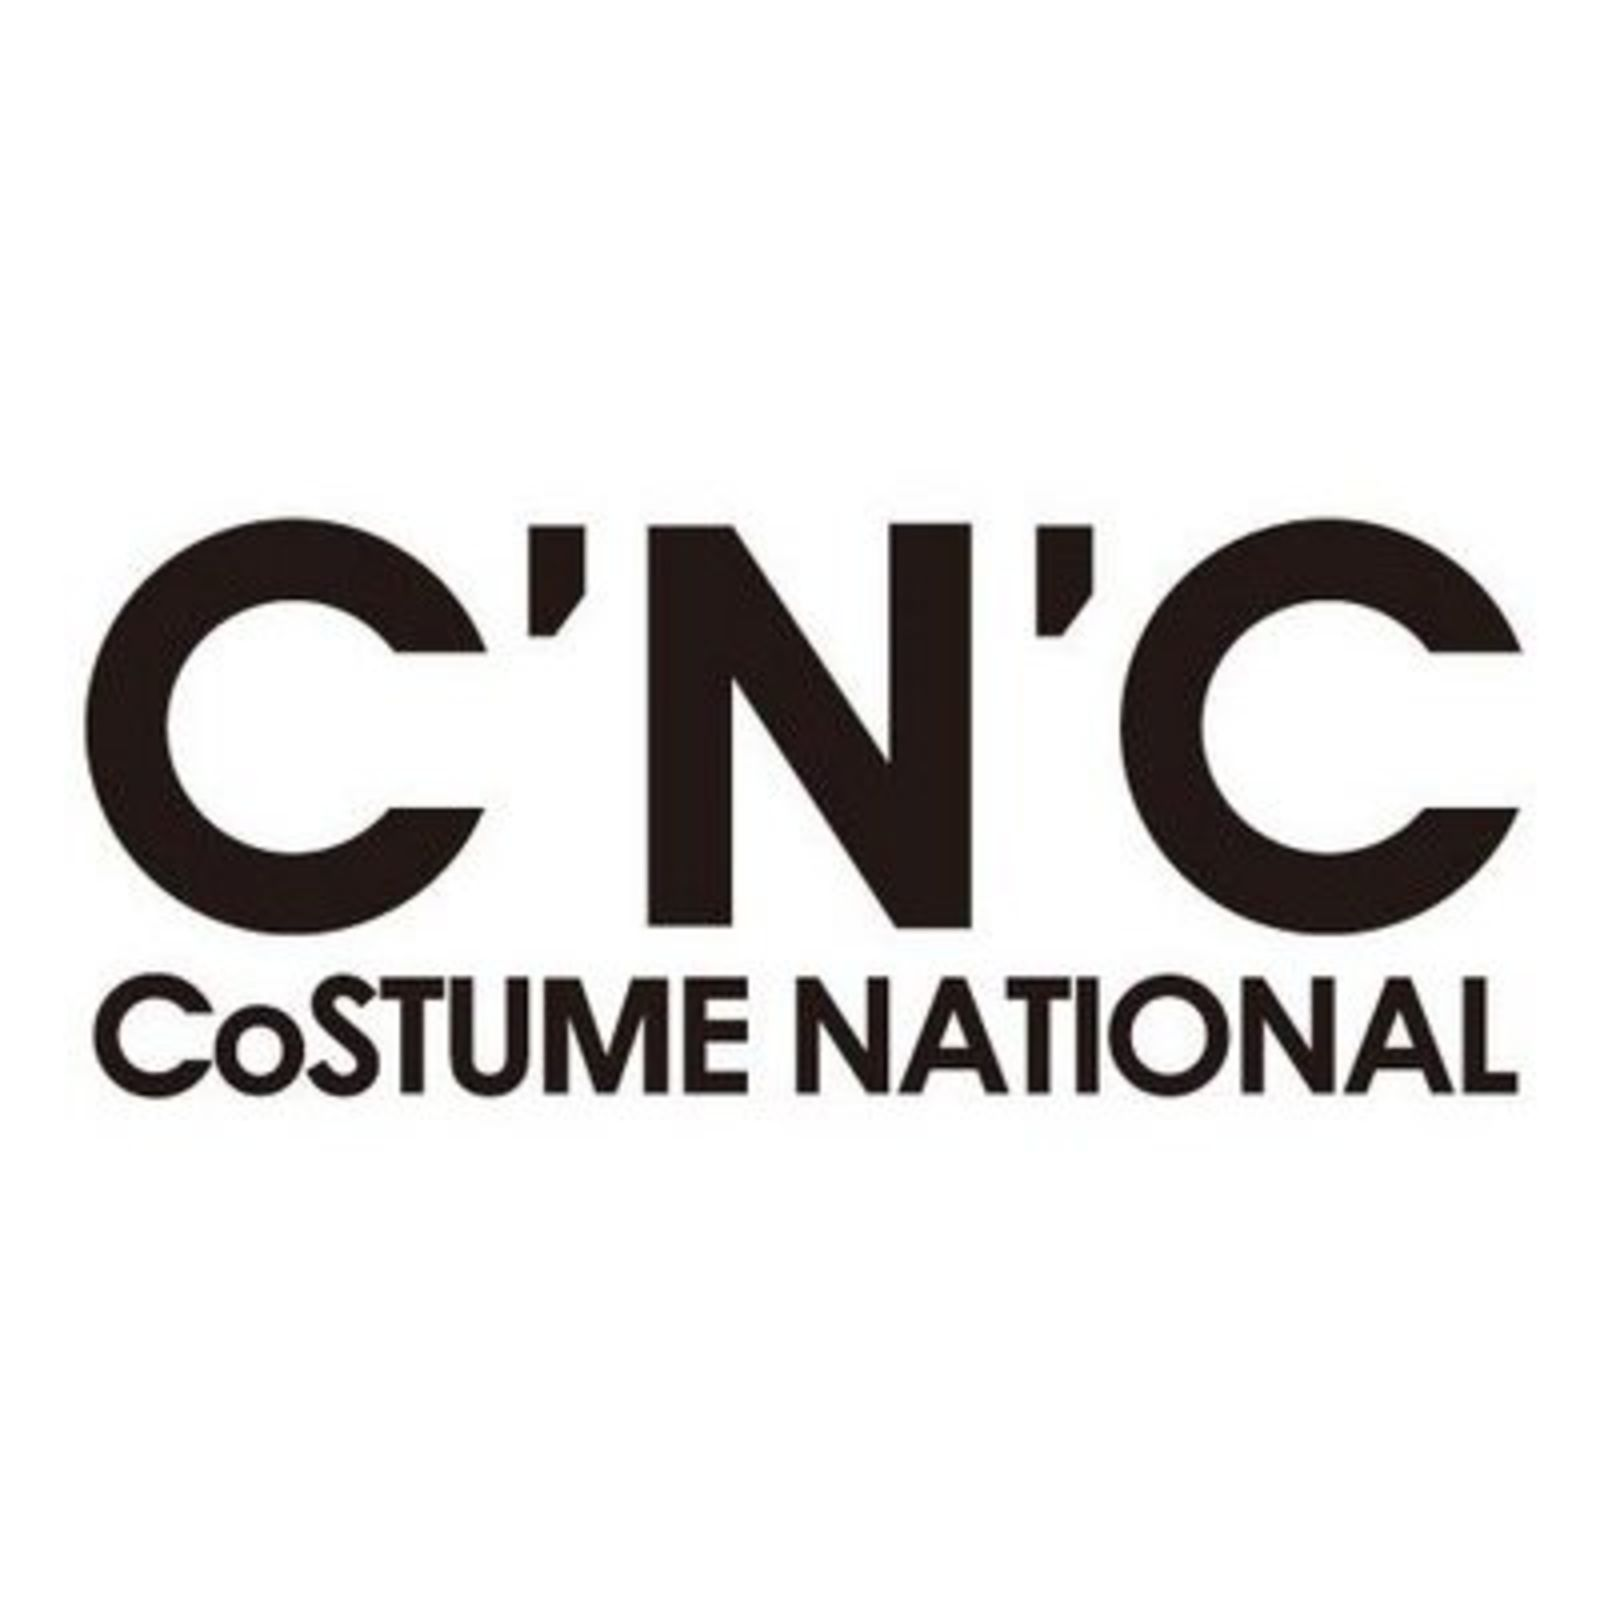 C'N'C CoSTUME NATIONAL